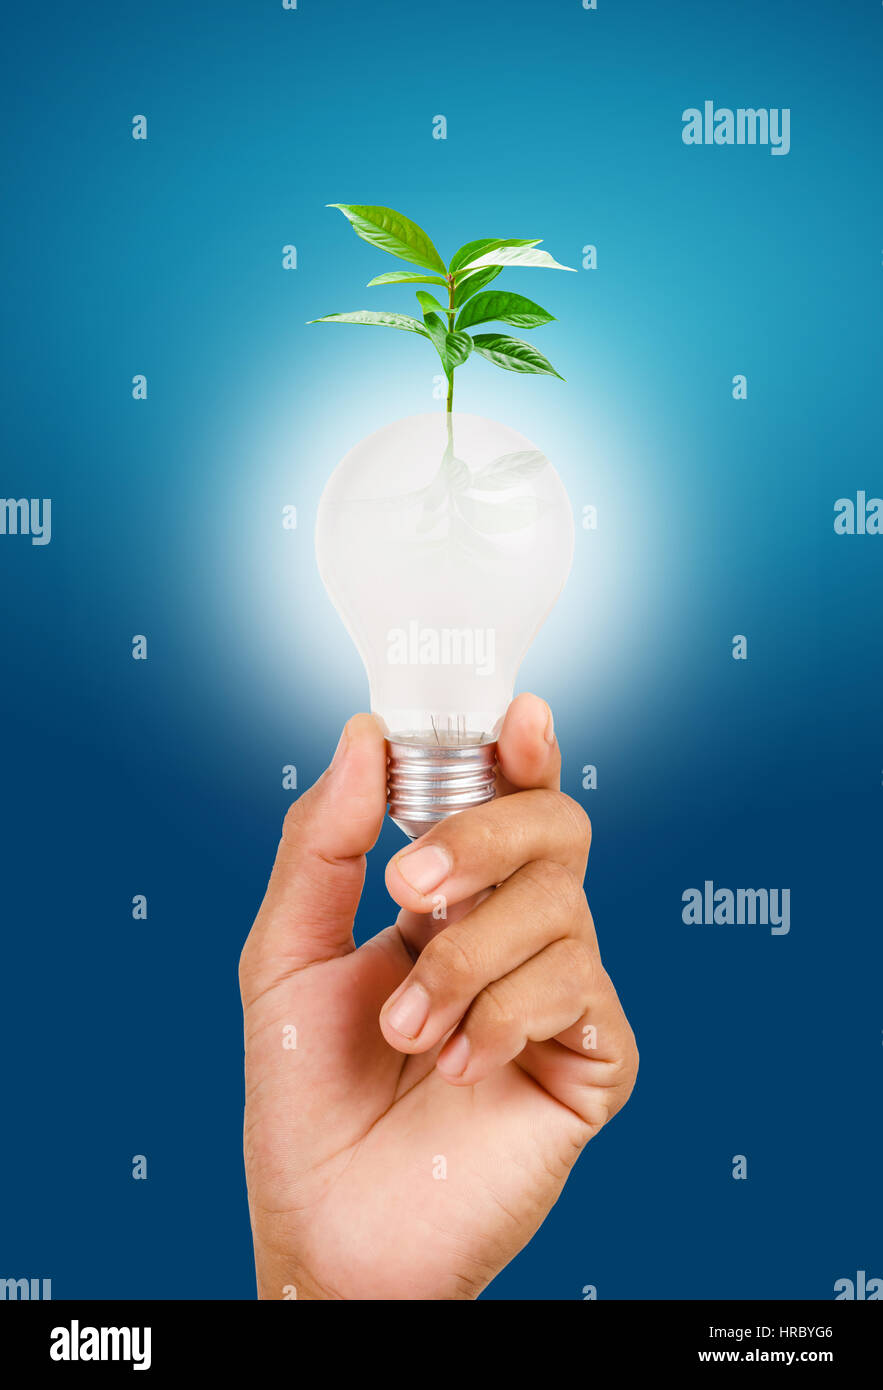 Sustainable resources, renewable energy and environmental conservation concept. - Stock Image